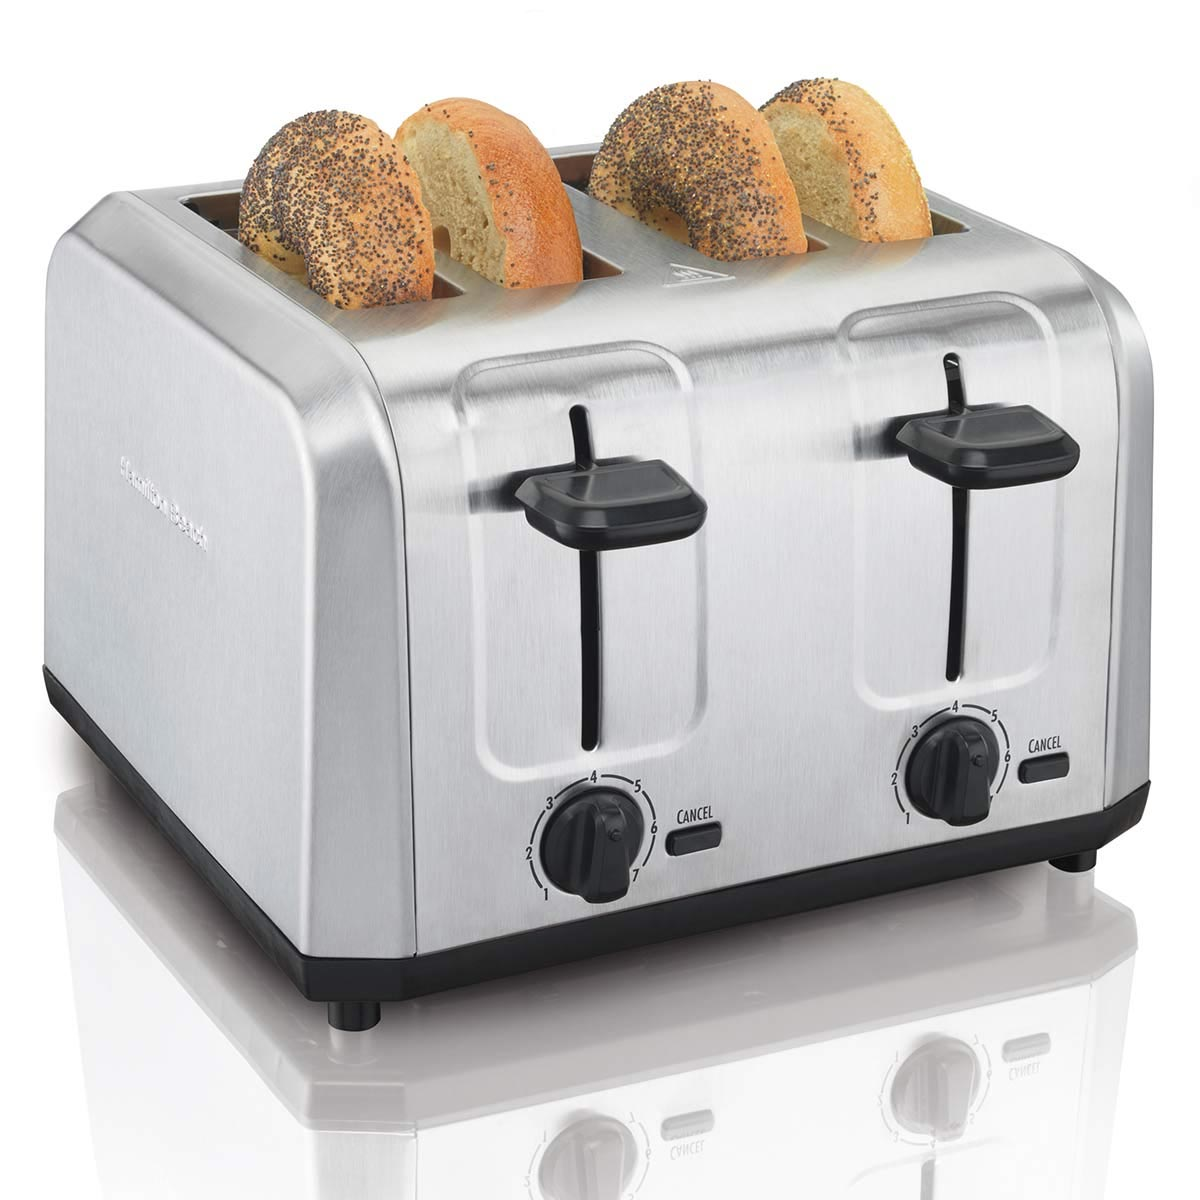 Brushed Stainless Steel 4-Slice Toaster (24910)